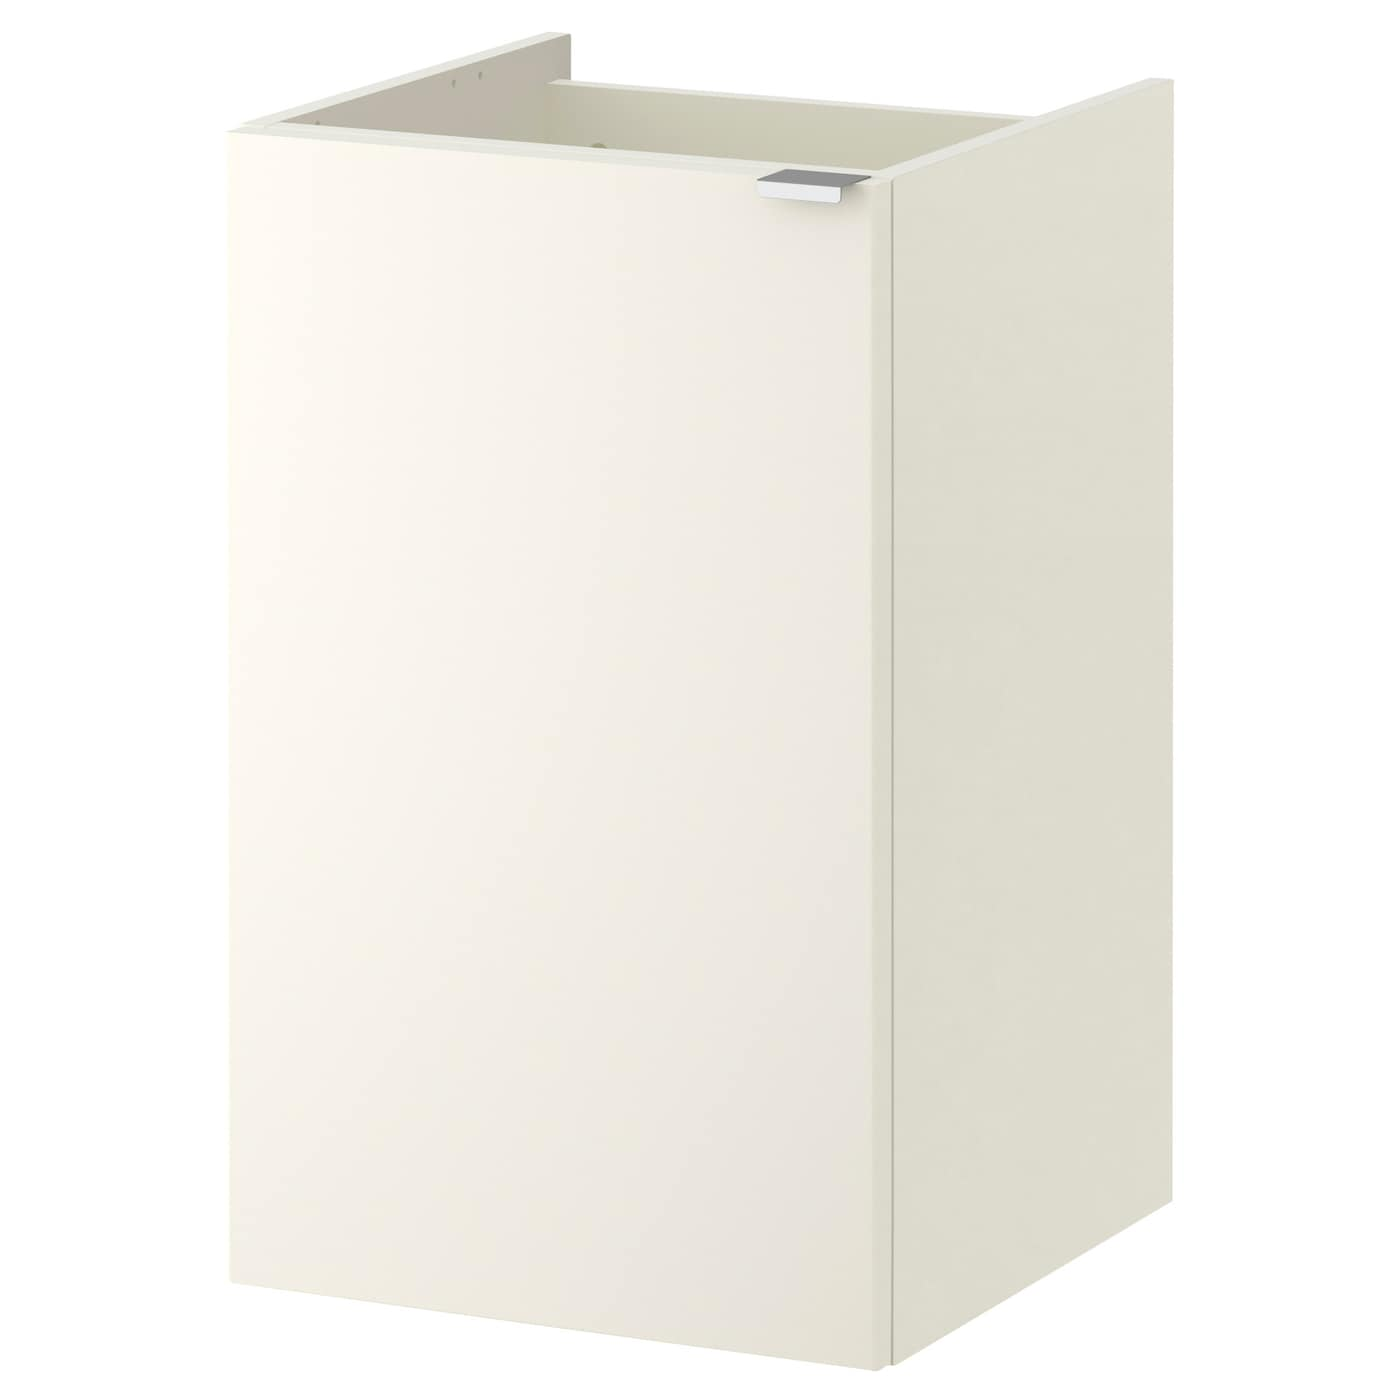 IKEA LILLÅNGEN wash-basin cabinet with 1 door